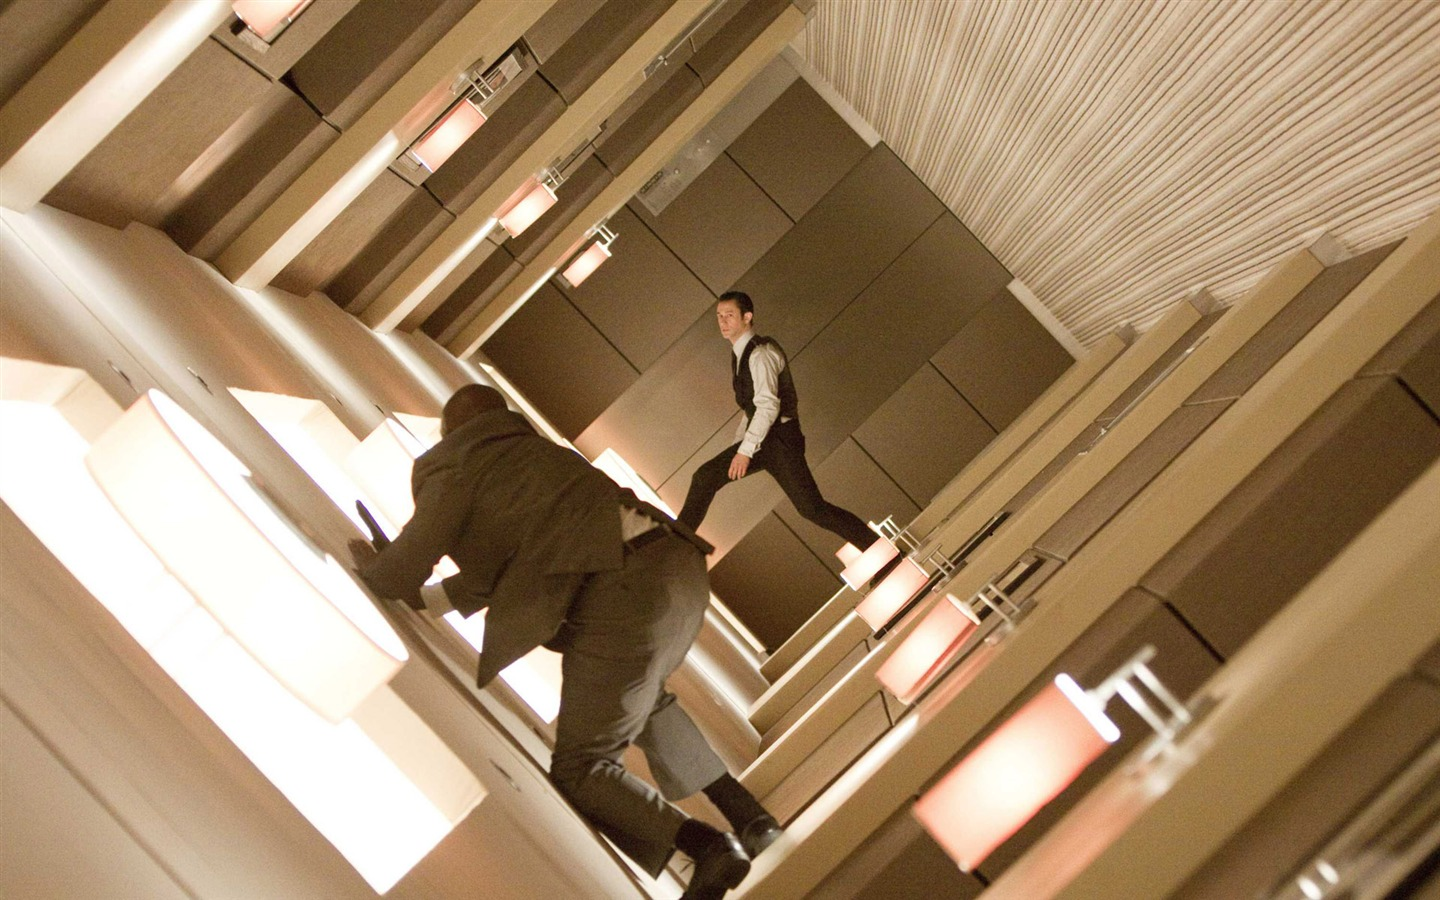 inception hd wallpaper #3 - 1440x900 wallpaper download - inception